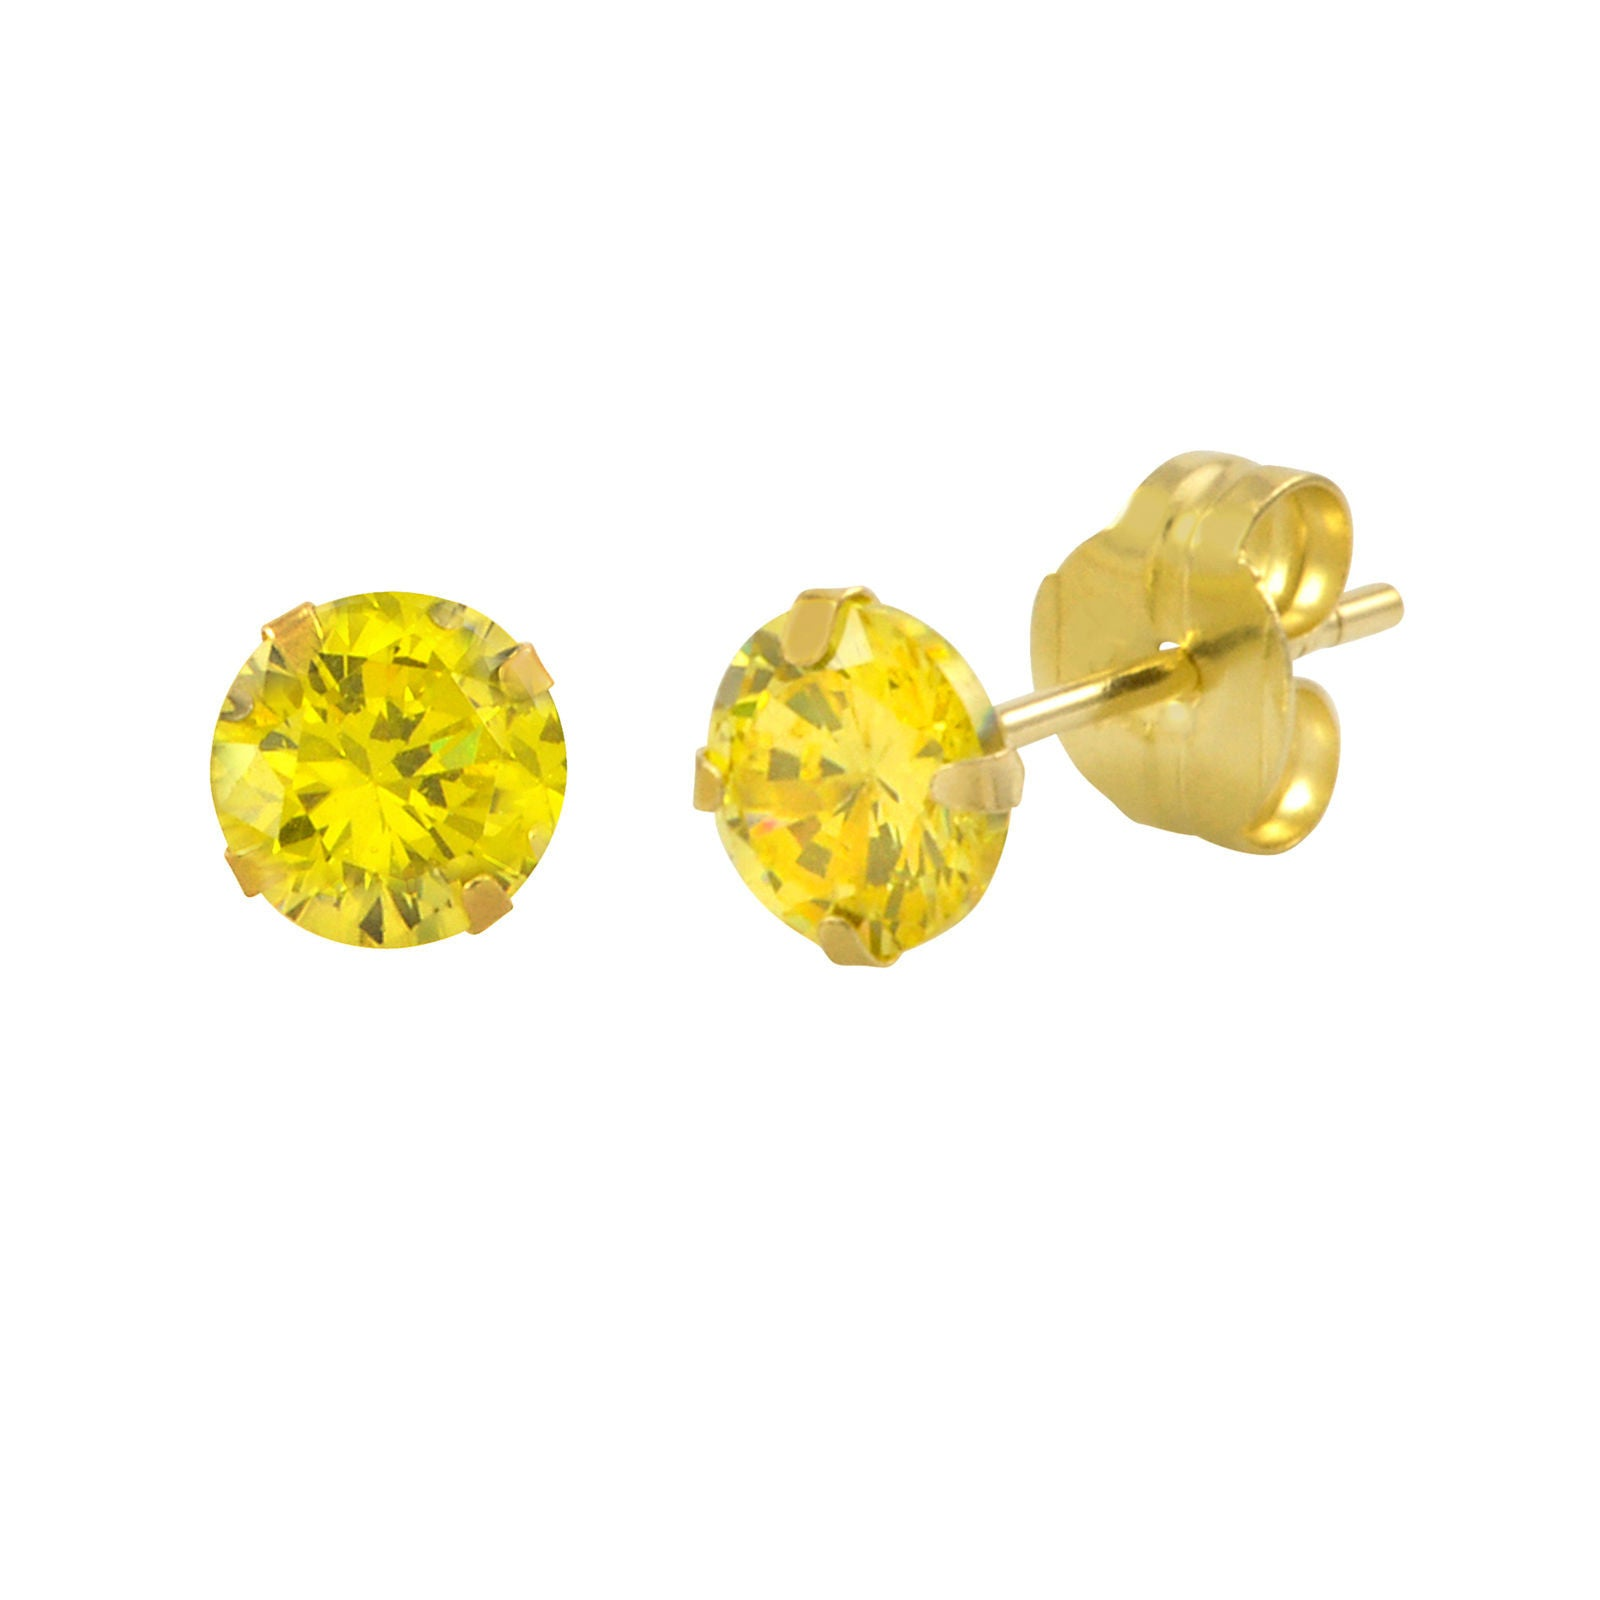 in a grahams natural earrings image citrine yellow stud gold luxe jewellers